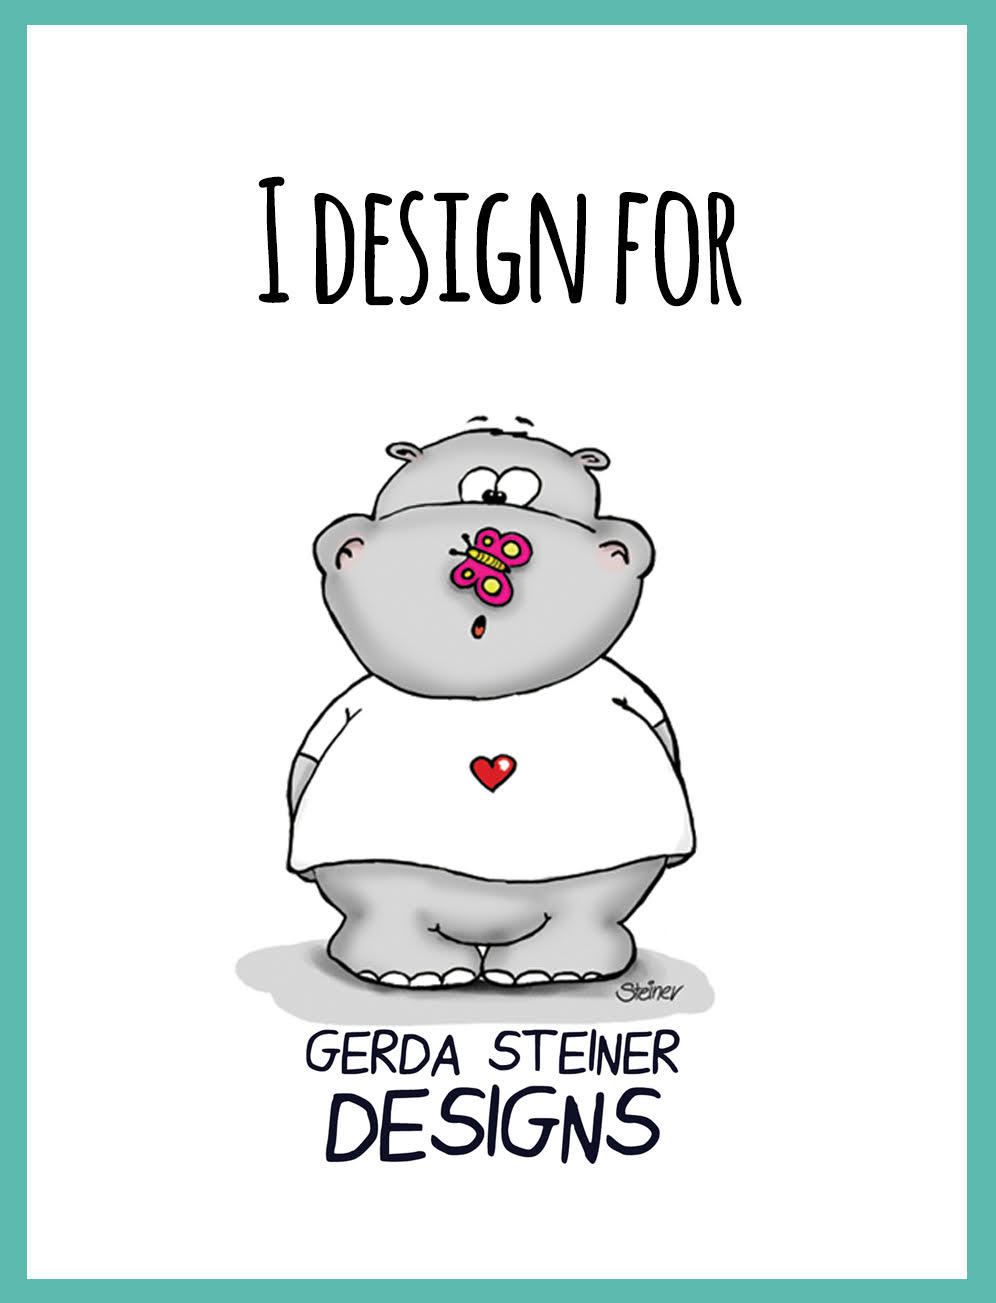 Gerda Steiner designs design team